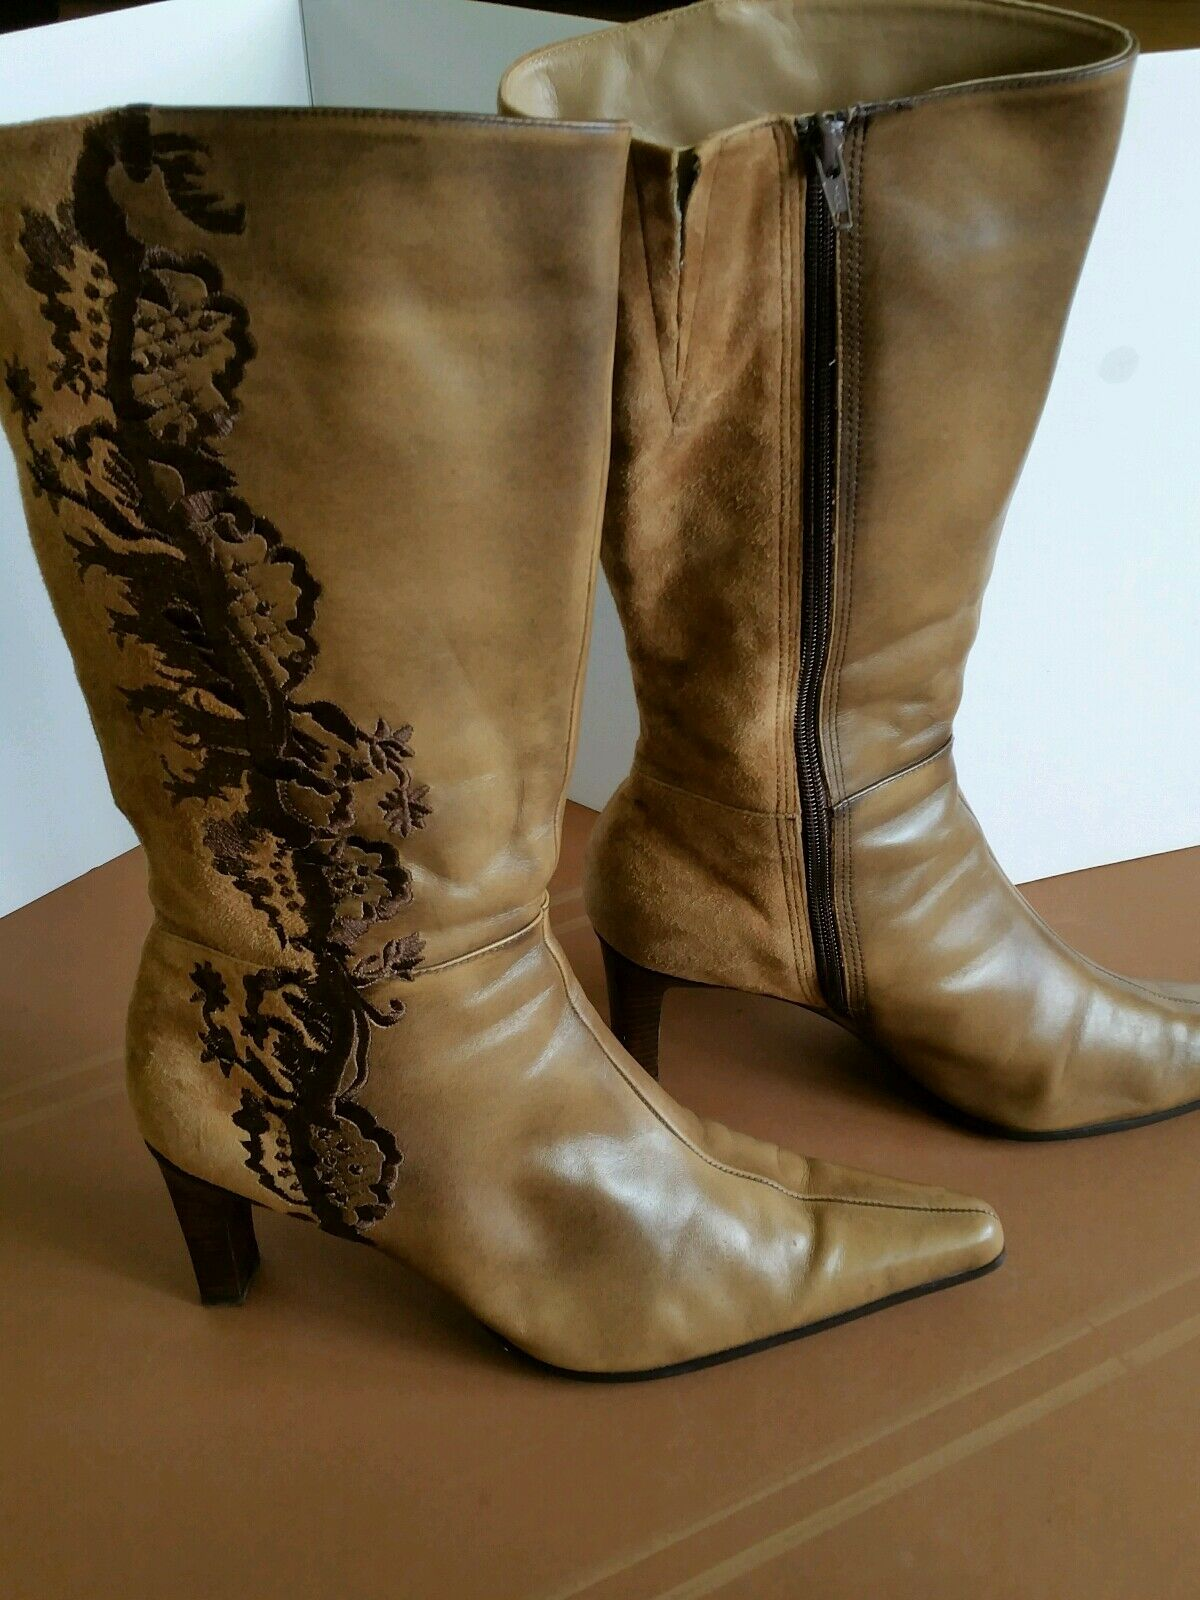 Clarks embroidered boots ninette 10.5 Tan heels zip up leather/suede